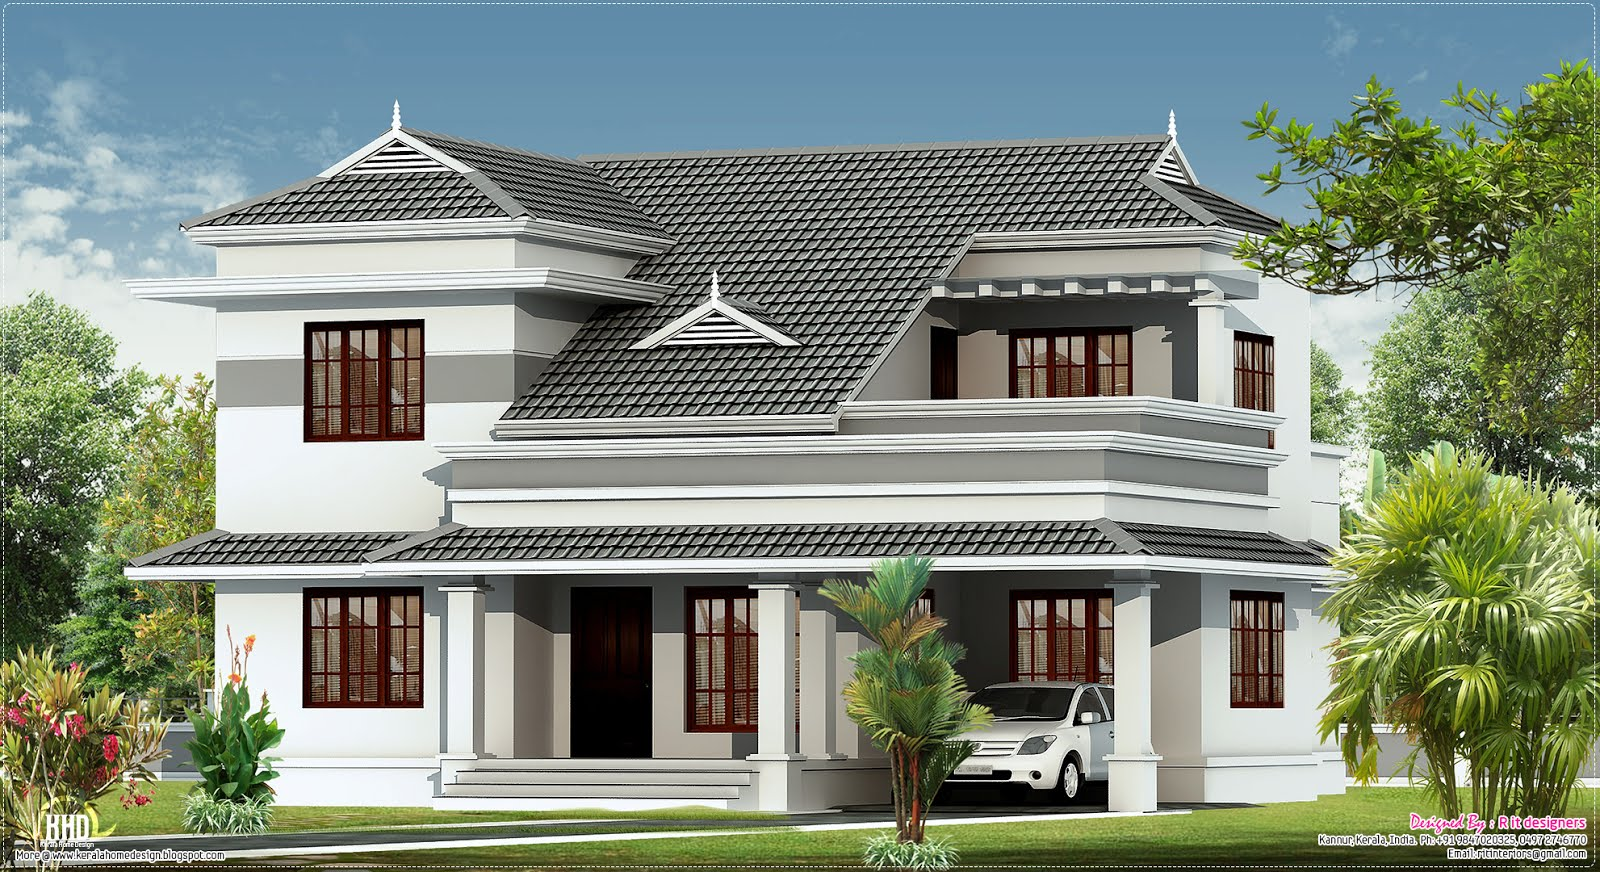 New villa design in 2250 kerala home design and for Villas designs photos